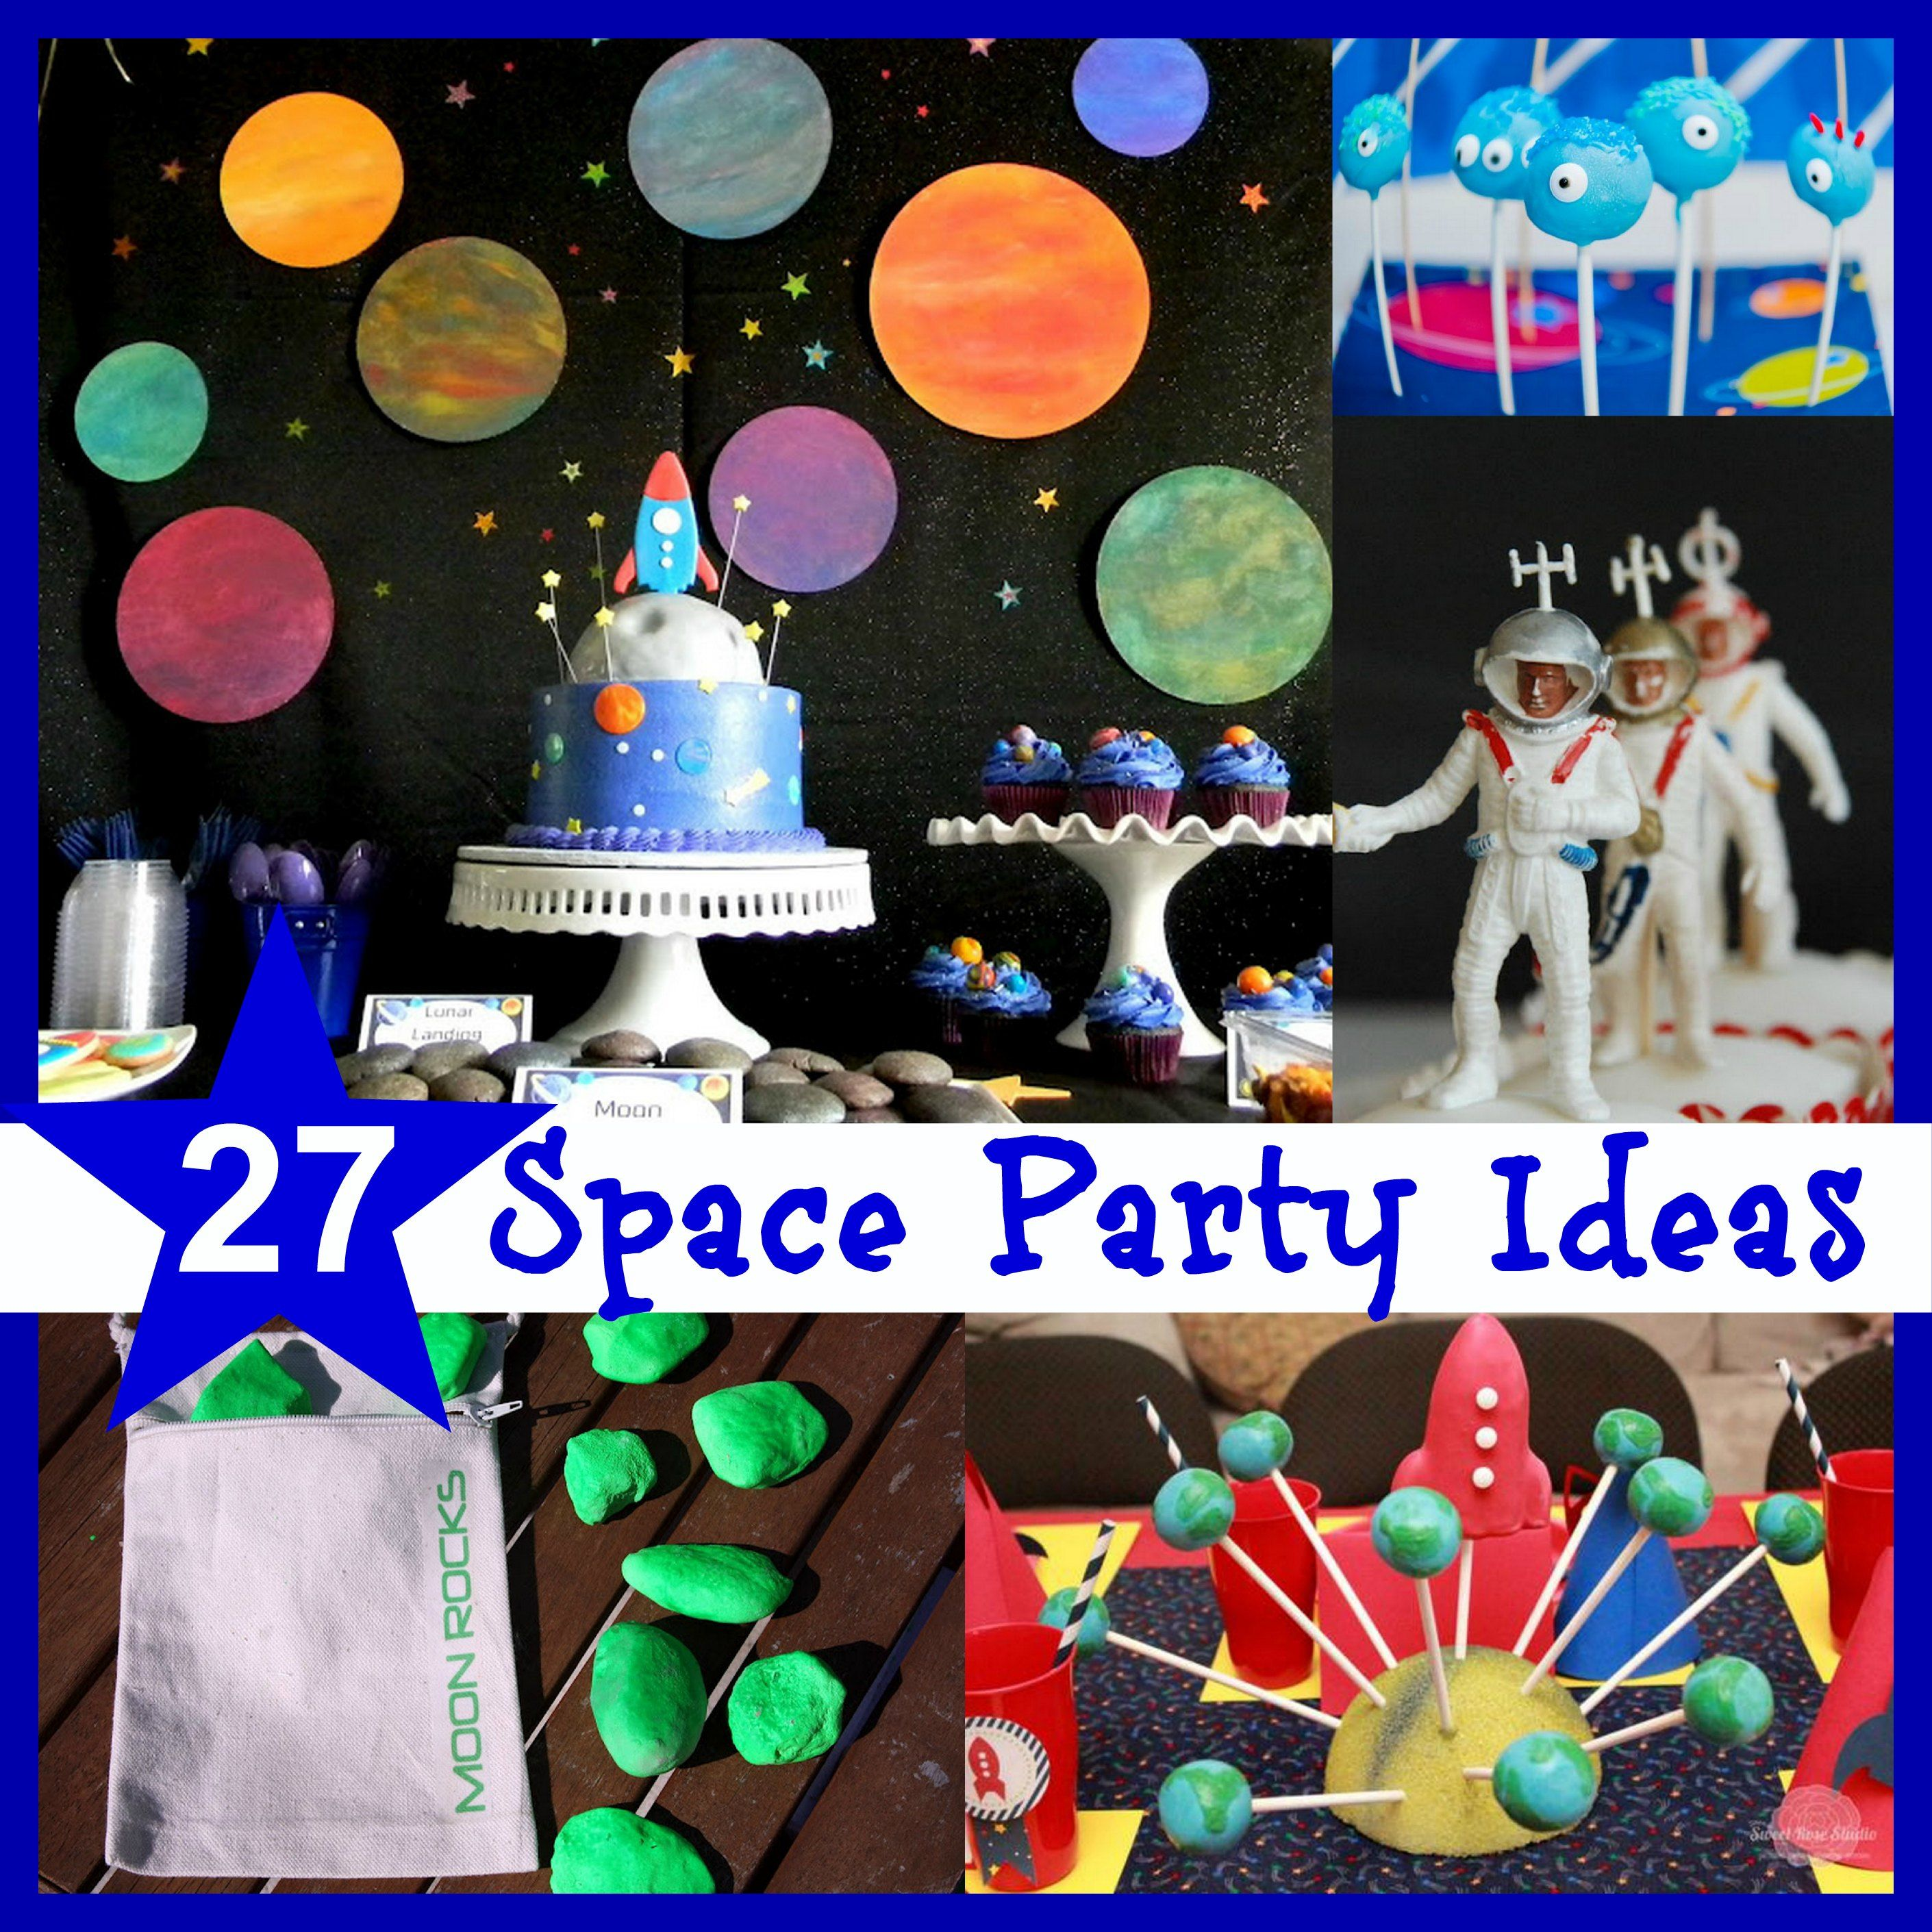 Space party ideas and inspiration Make Create Do space